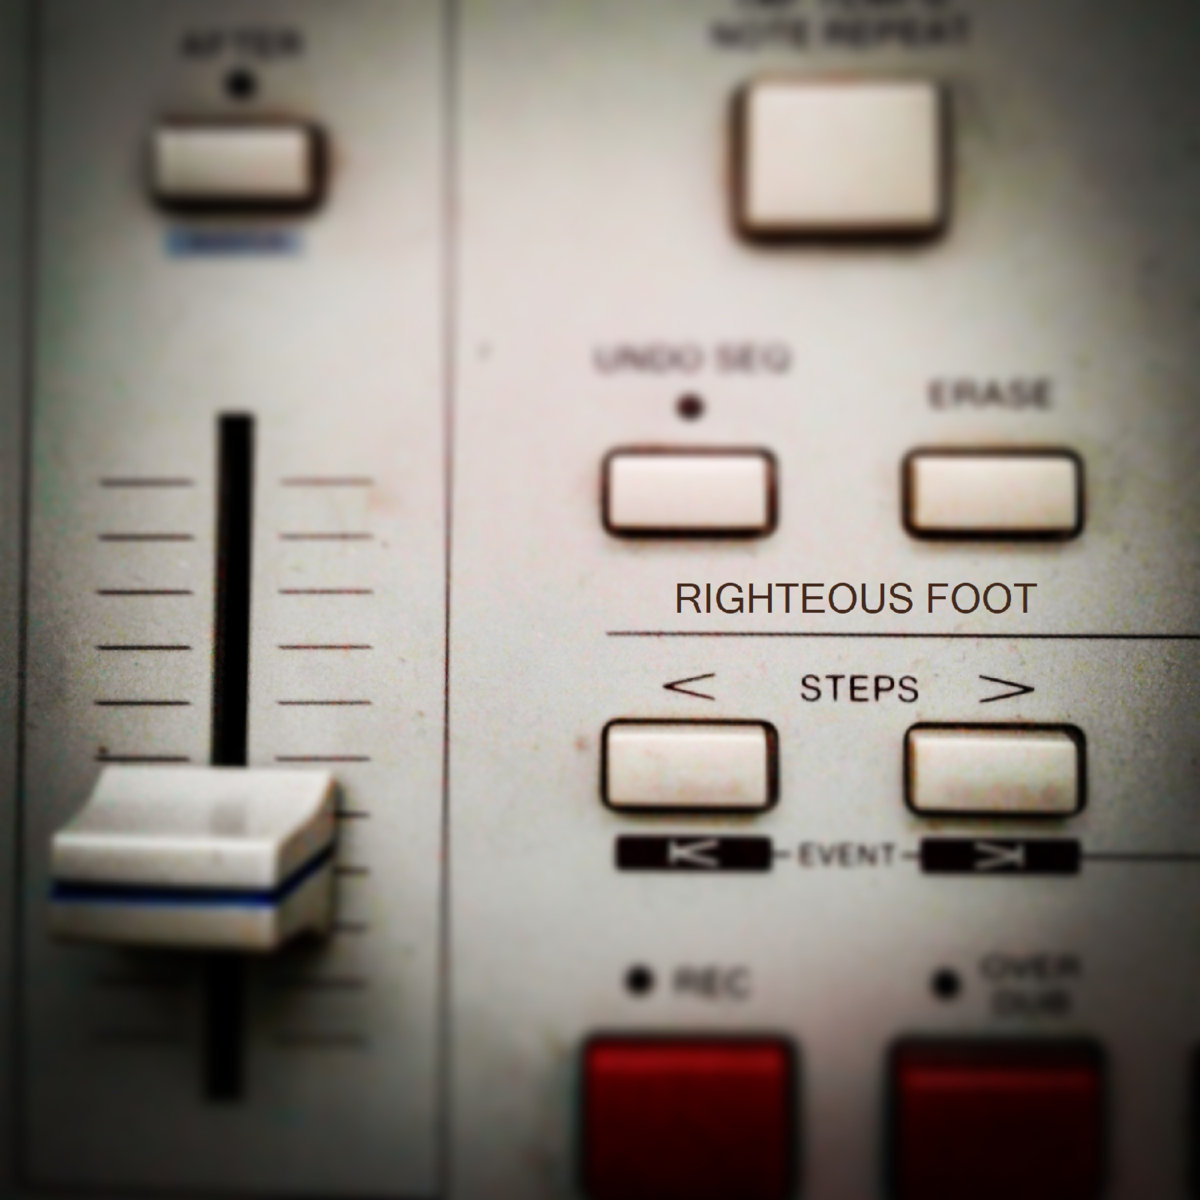 Listen: Righteous Foot – Steps (ft. Raw Poetic & MC Atma)